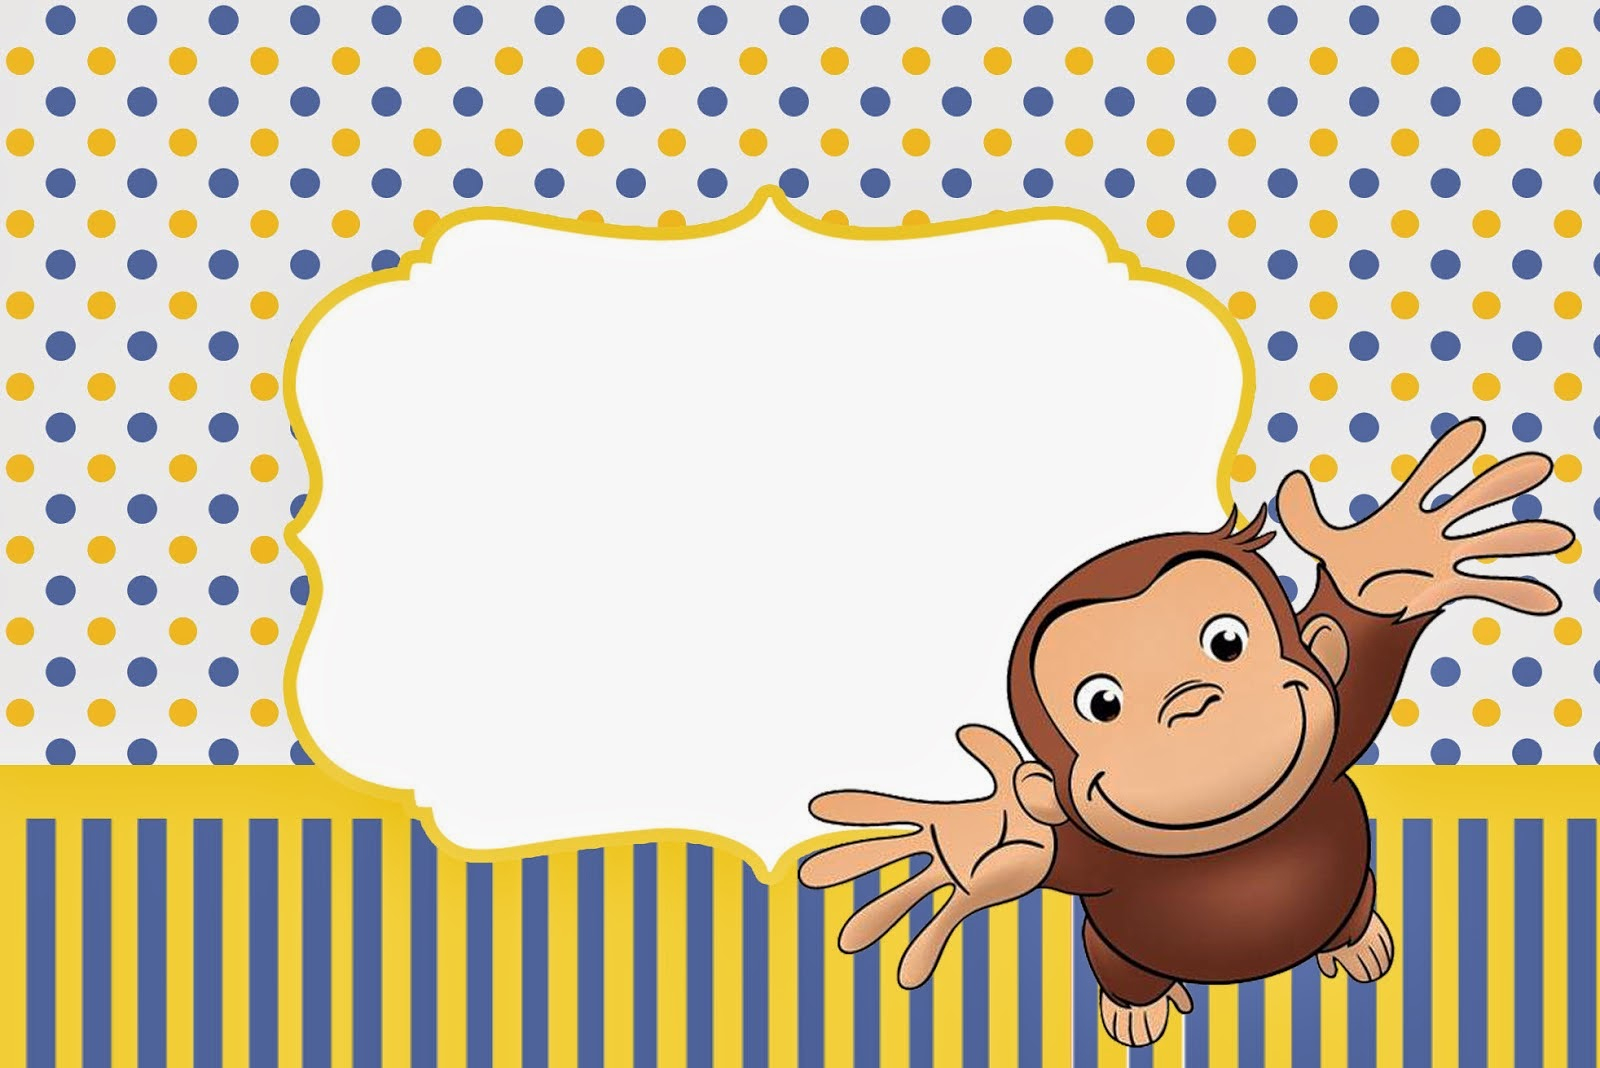 Curious George Free Printable Invitations. | Oh My Fiesta! In English - Free Printable Curious George Invitations